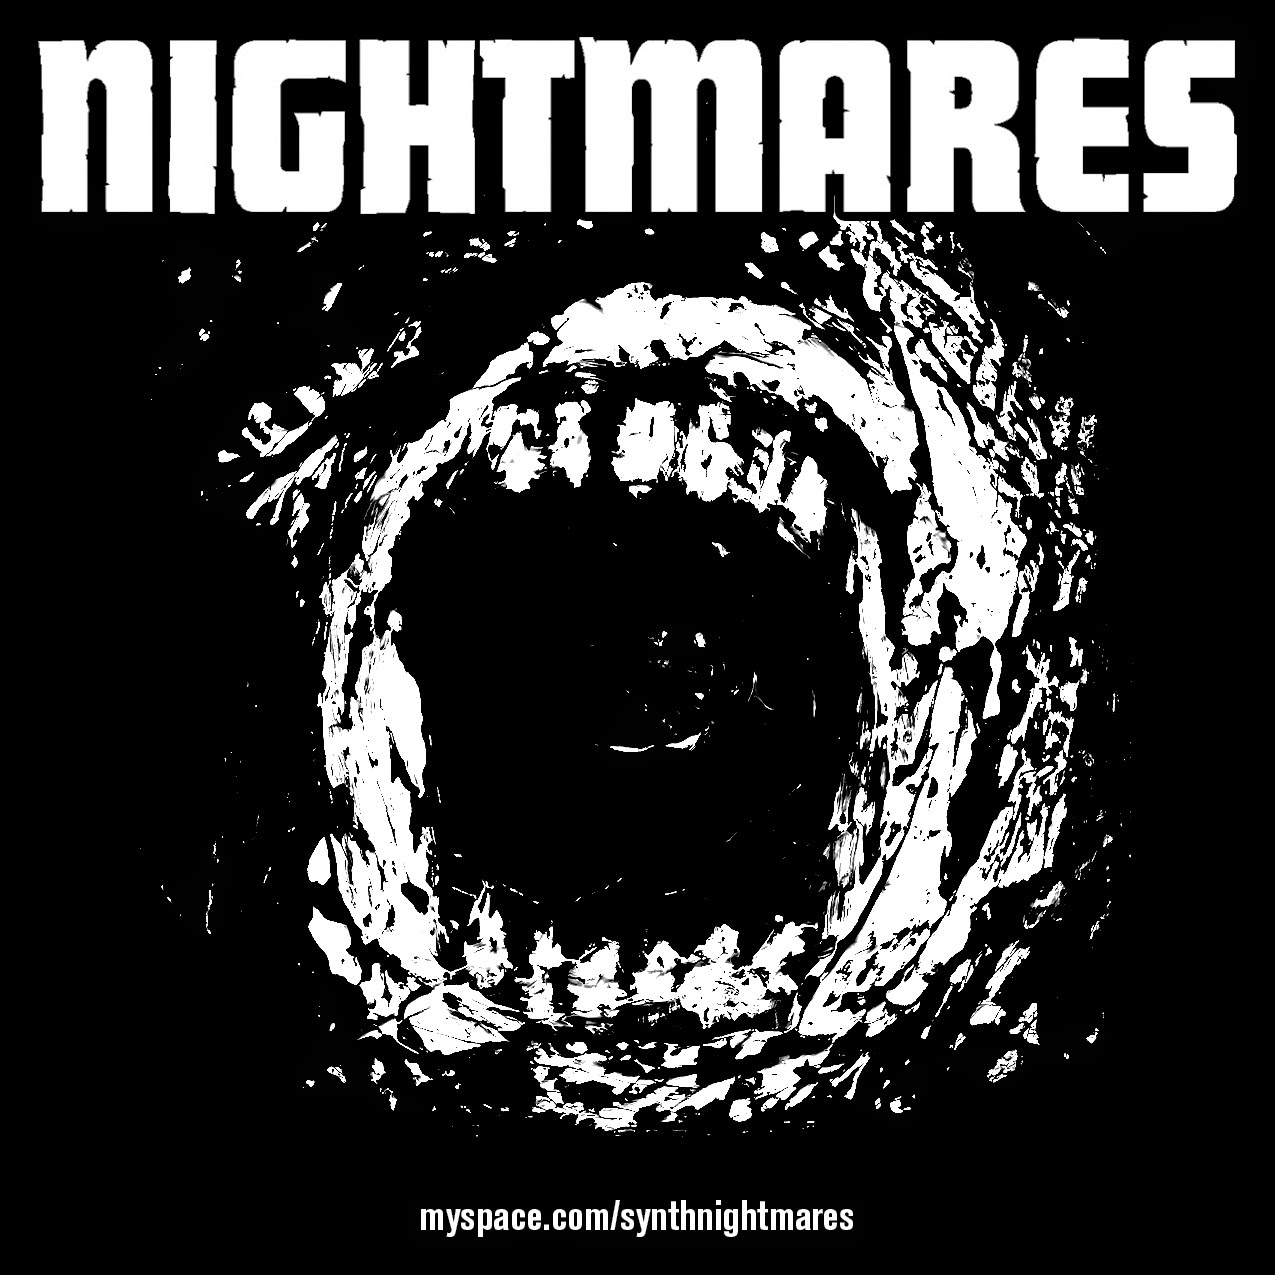 http://synthnightmares.bandcamp.com/